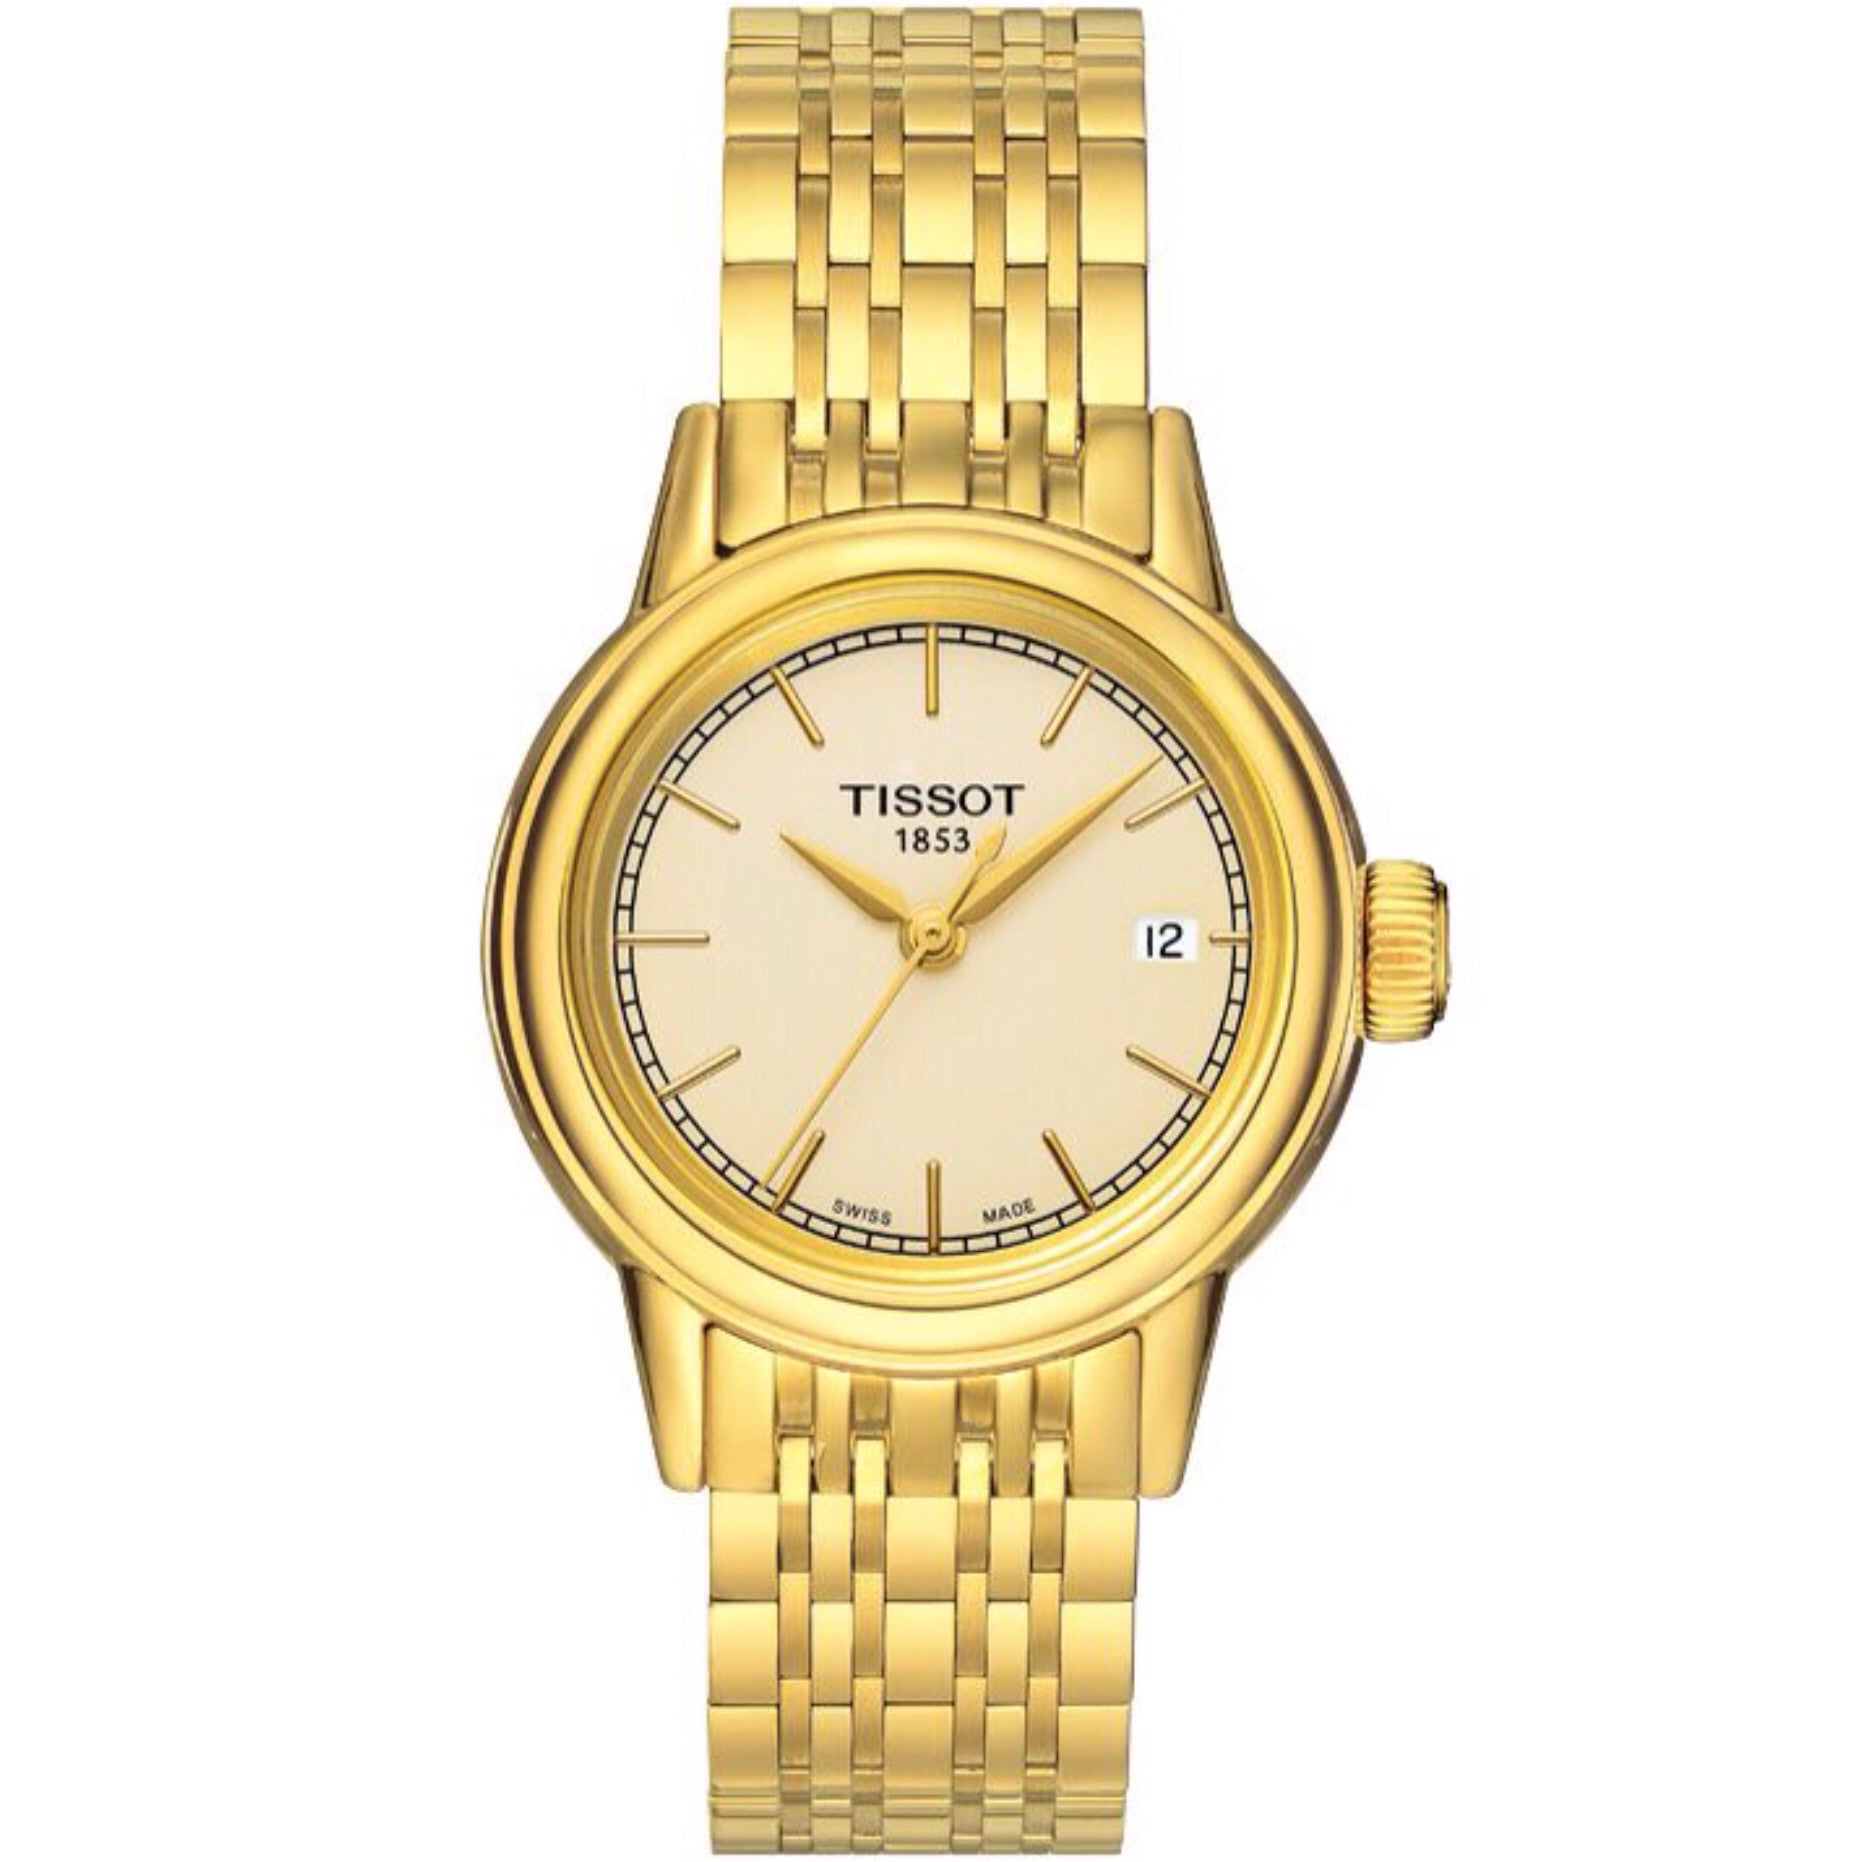 Tissot Carson Quartz Lady Champagne Dial Watch with Gold PVD Stainless Steel Bracelet